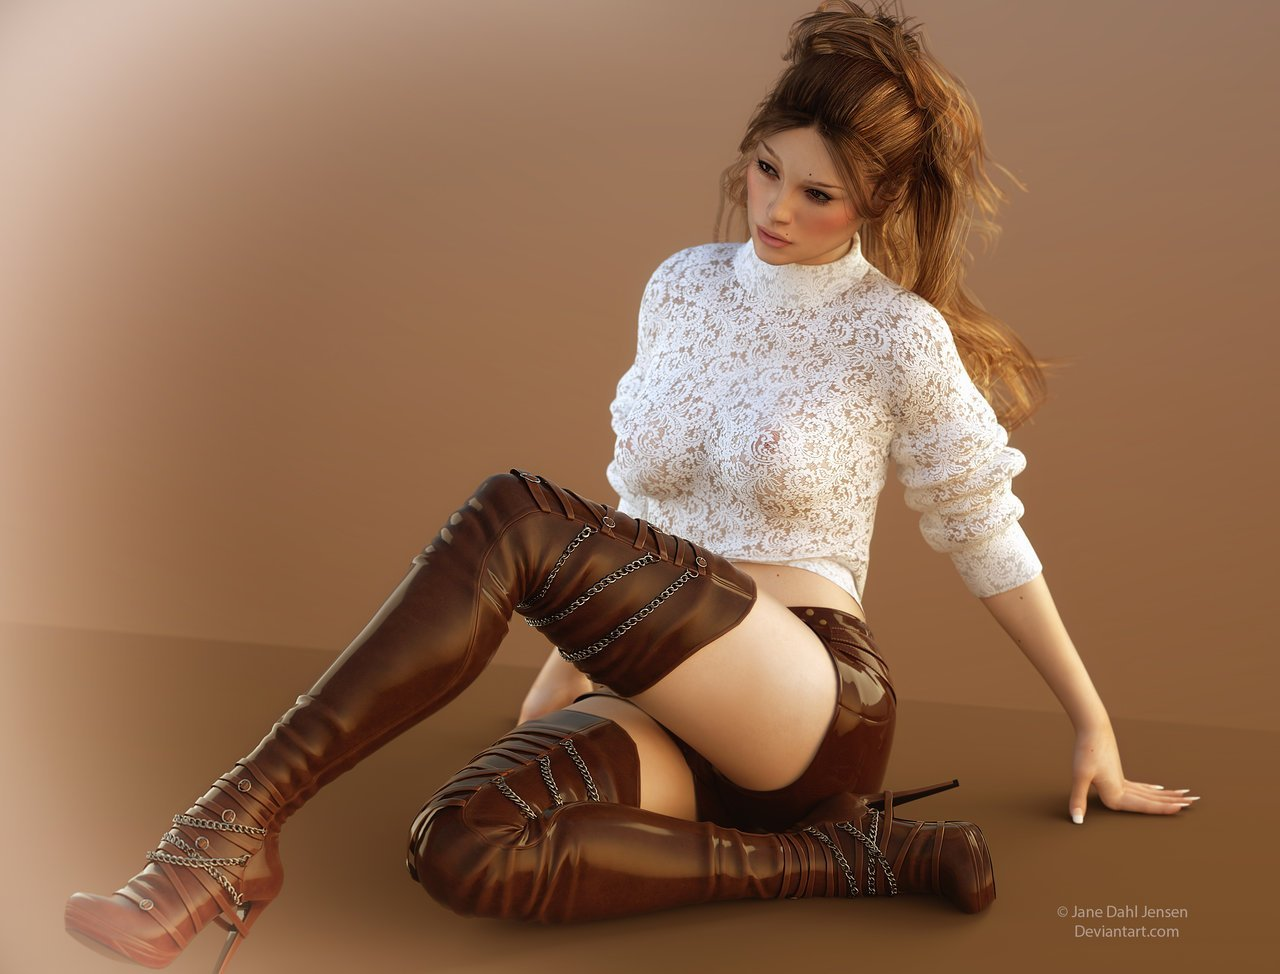 janedj – Boots Lace And Hotpants